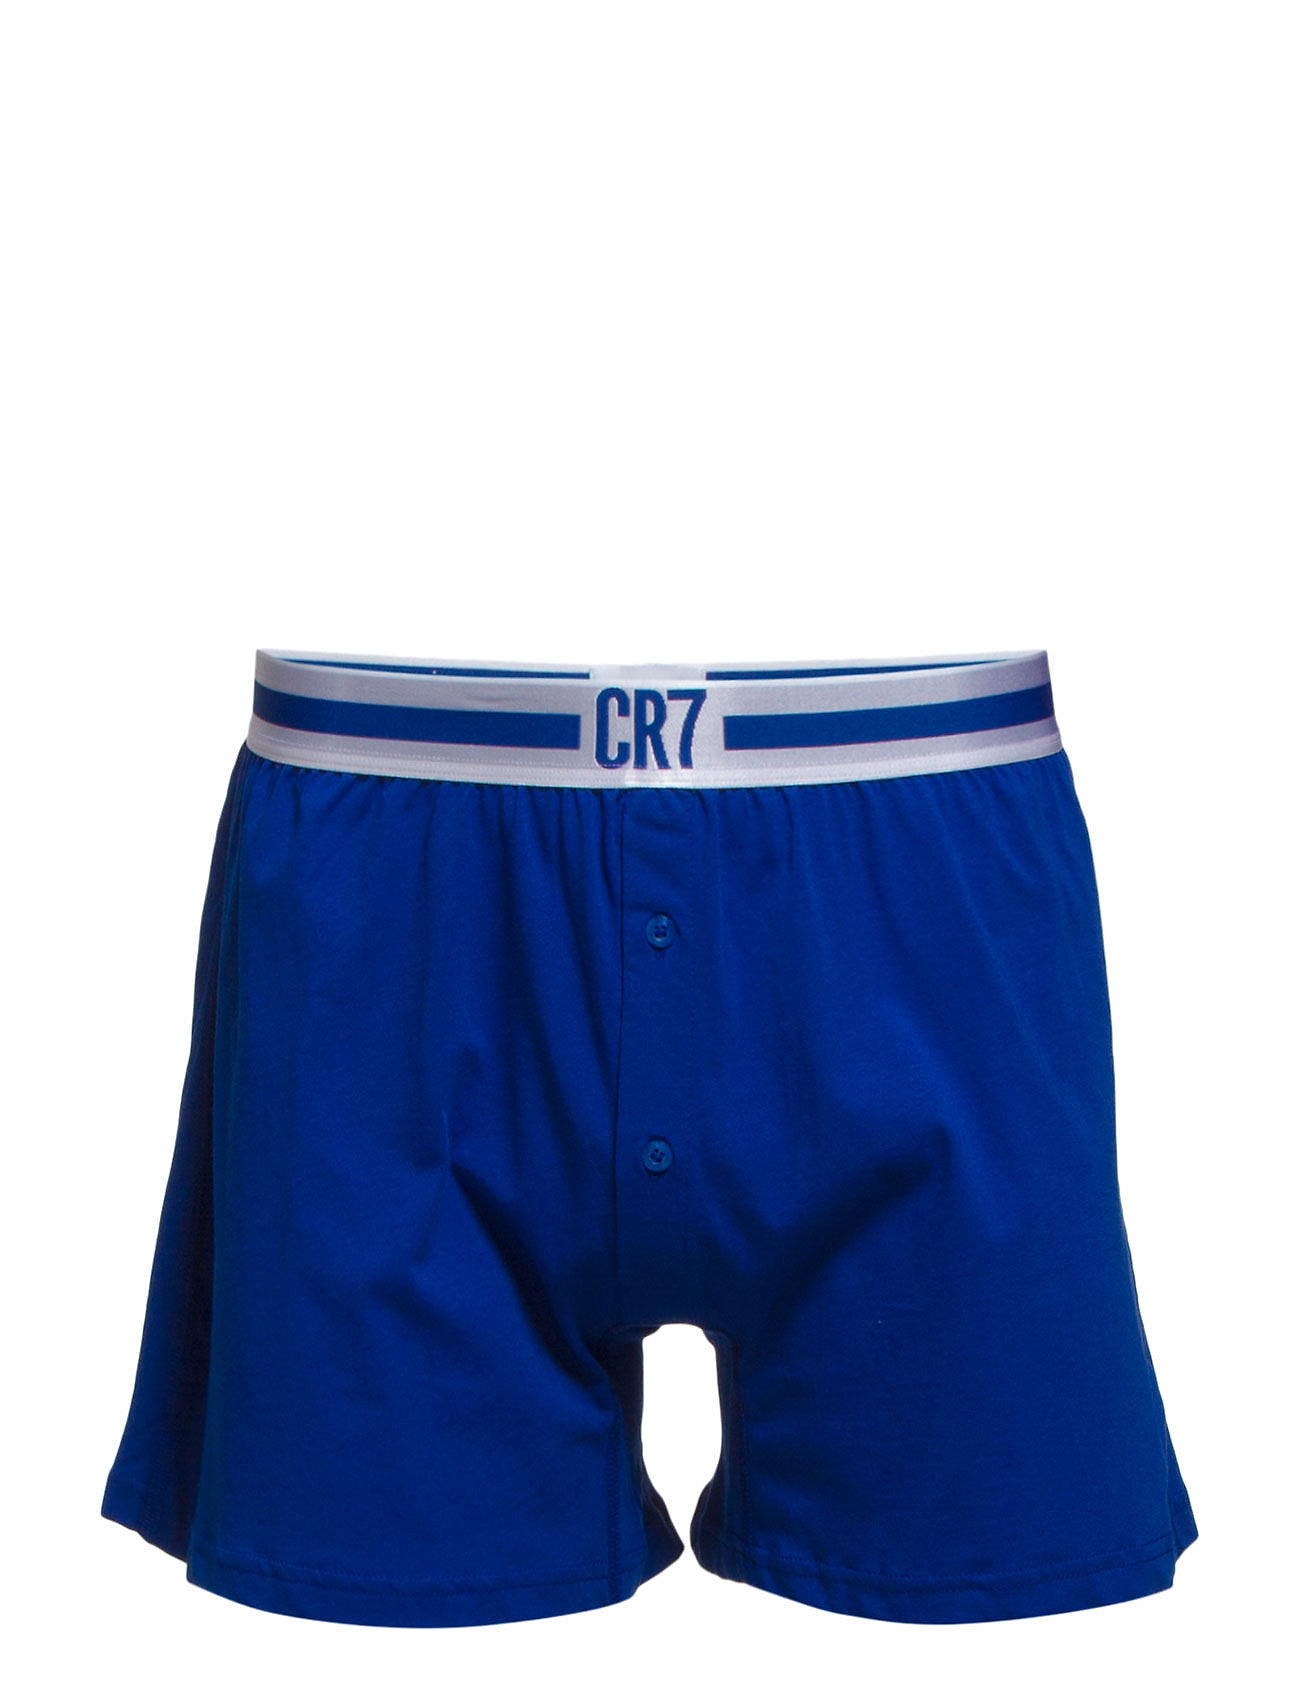 CR7 Boxer - BLUE